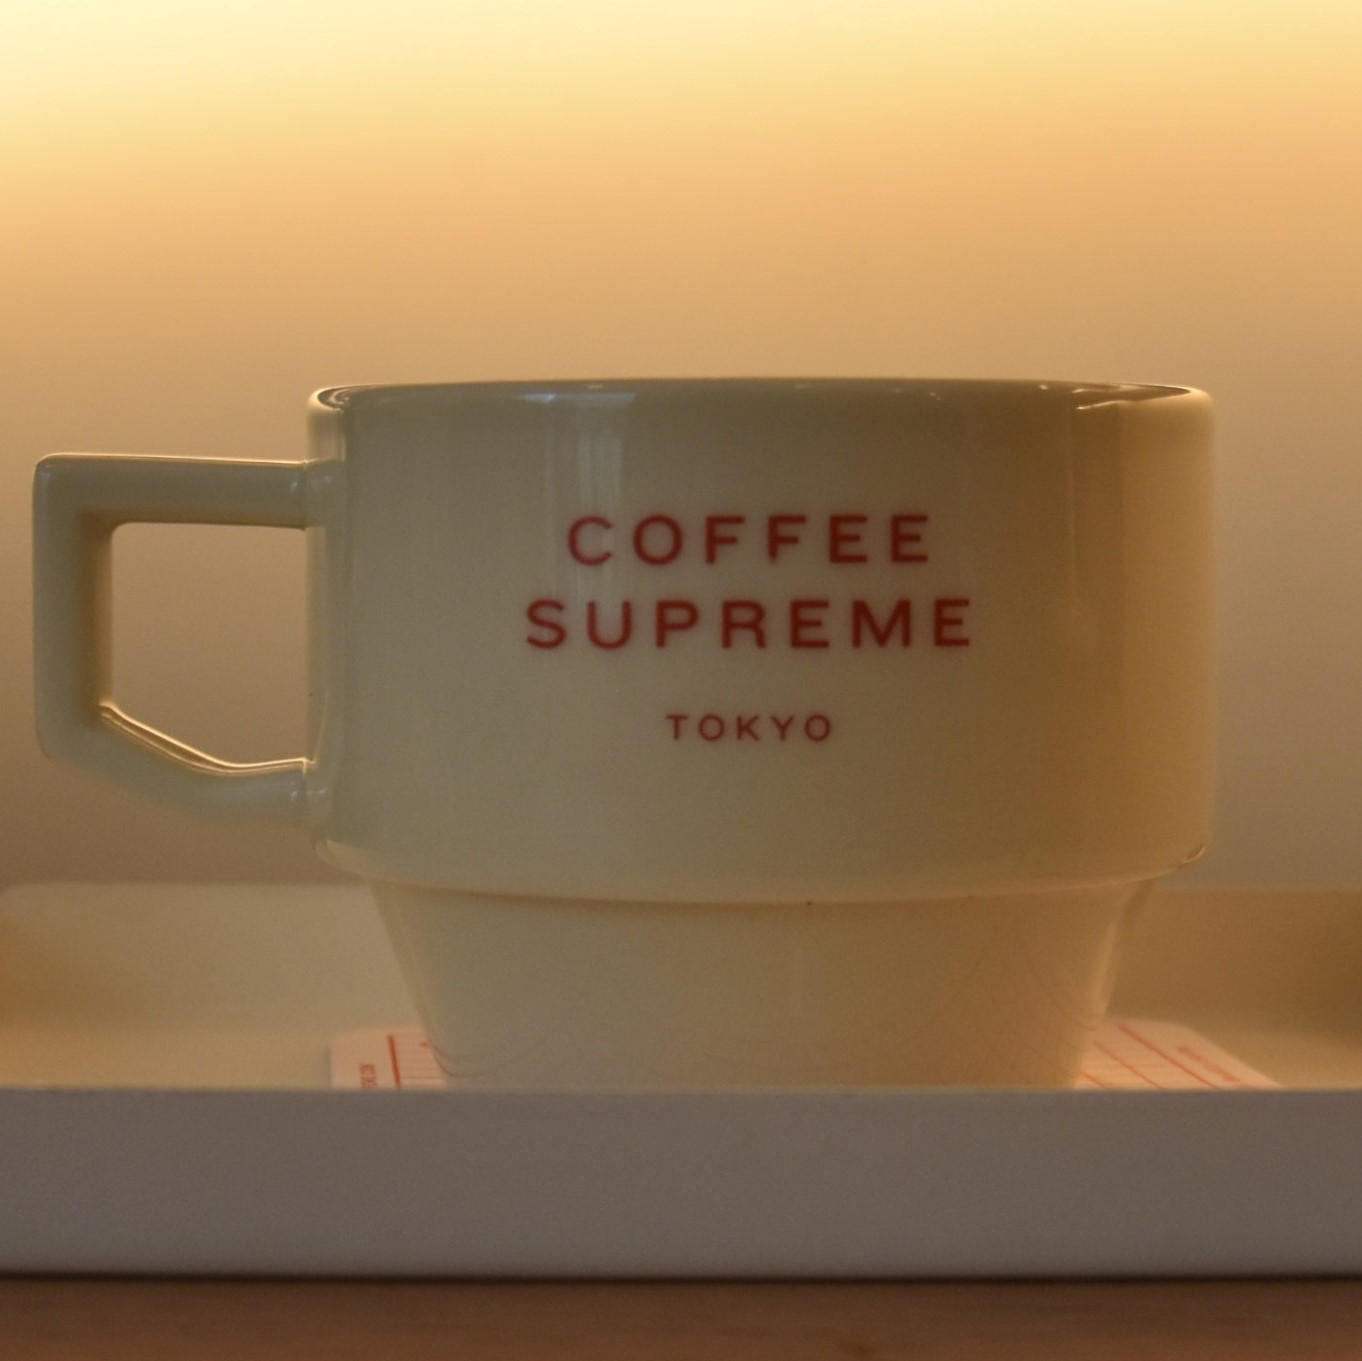 The cup says it all: Coffee Supreme, Tokyo (in bright red capitals on the side)